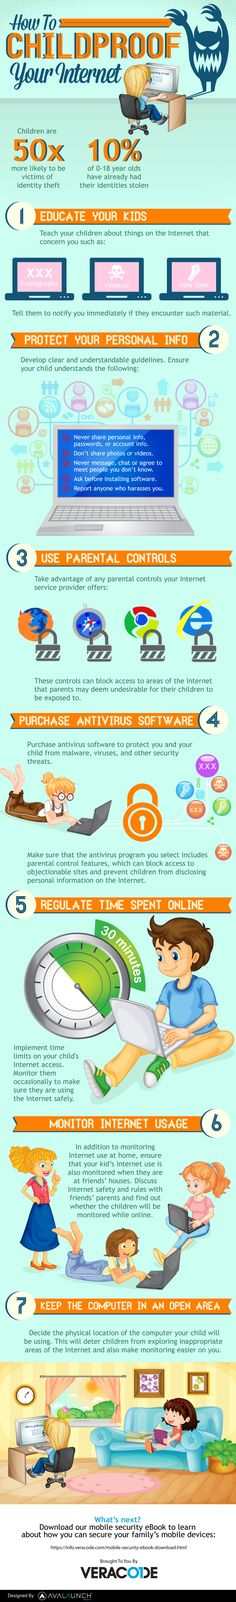 Childproofing Your Internet #Infographic